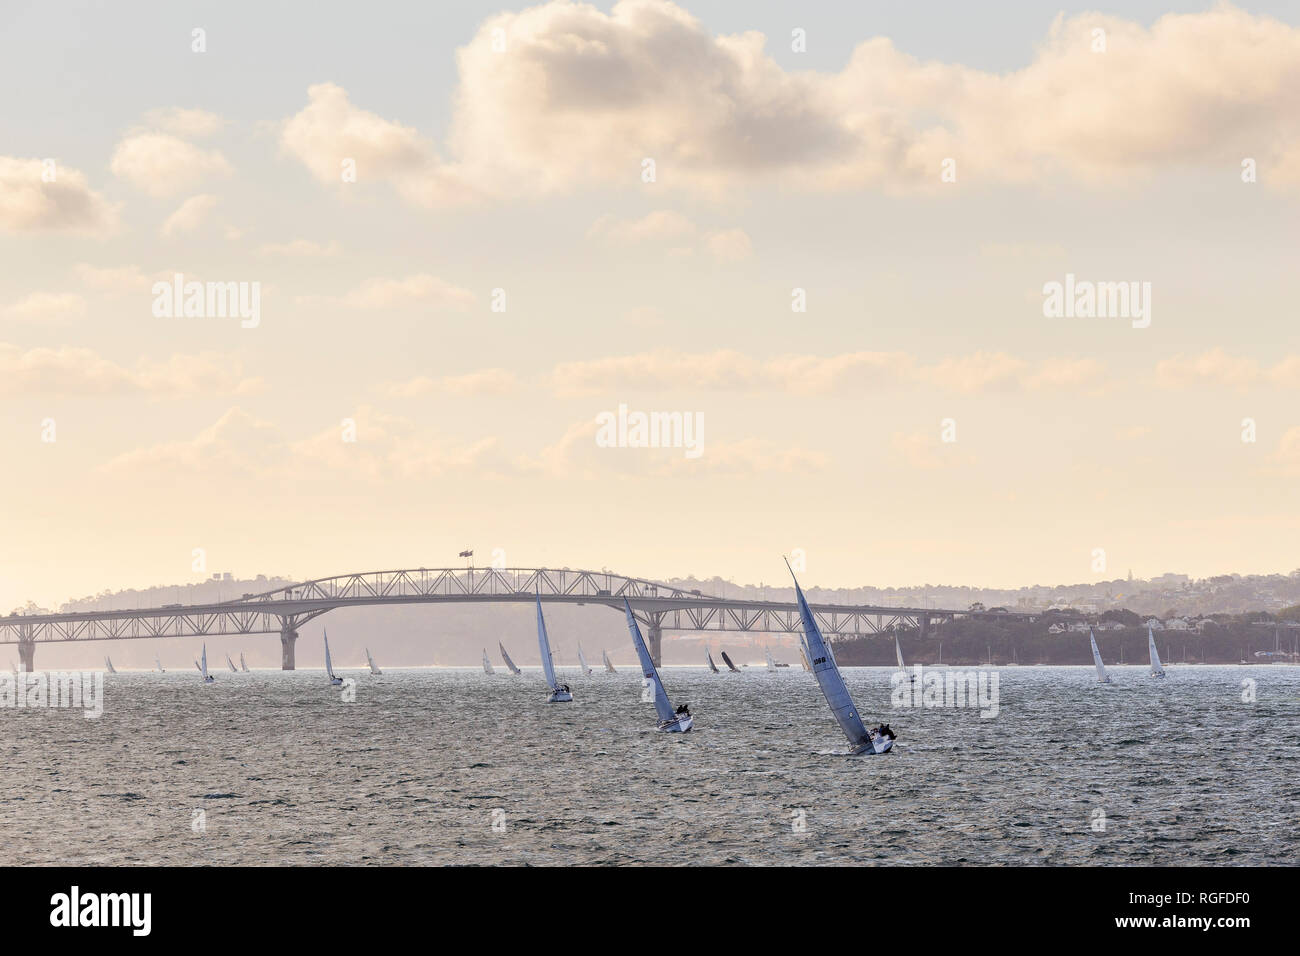 Many sailing boats at dusk in Auckland Harbour, with Auckland Harbour Bridge in the background. - Stock Image